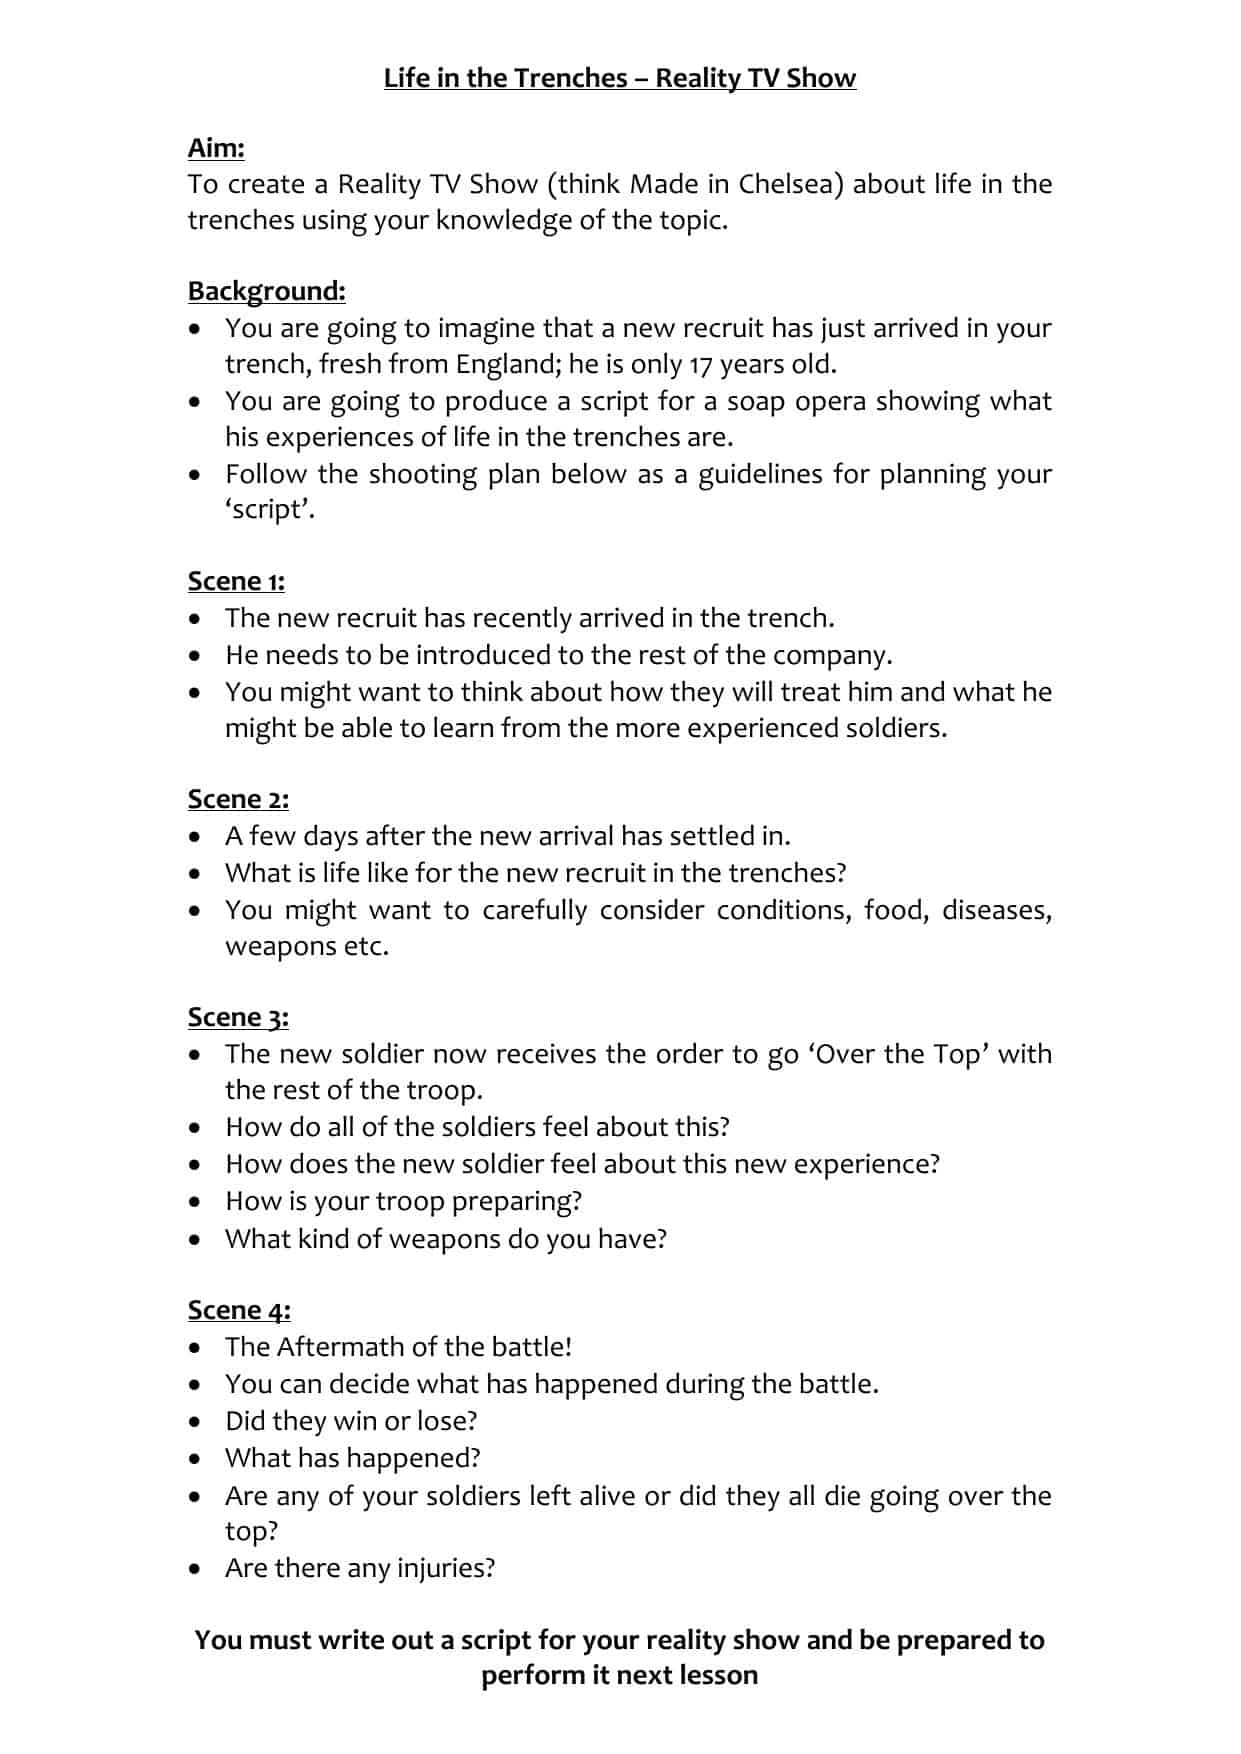 Life In The Trenches Worksheet